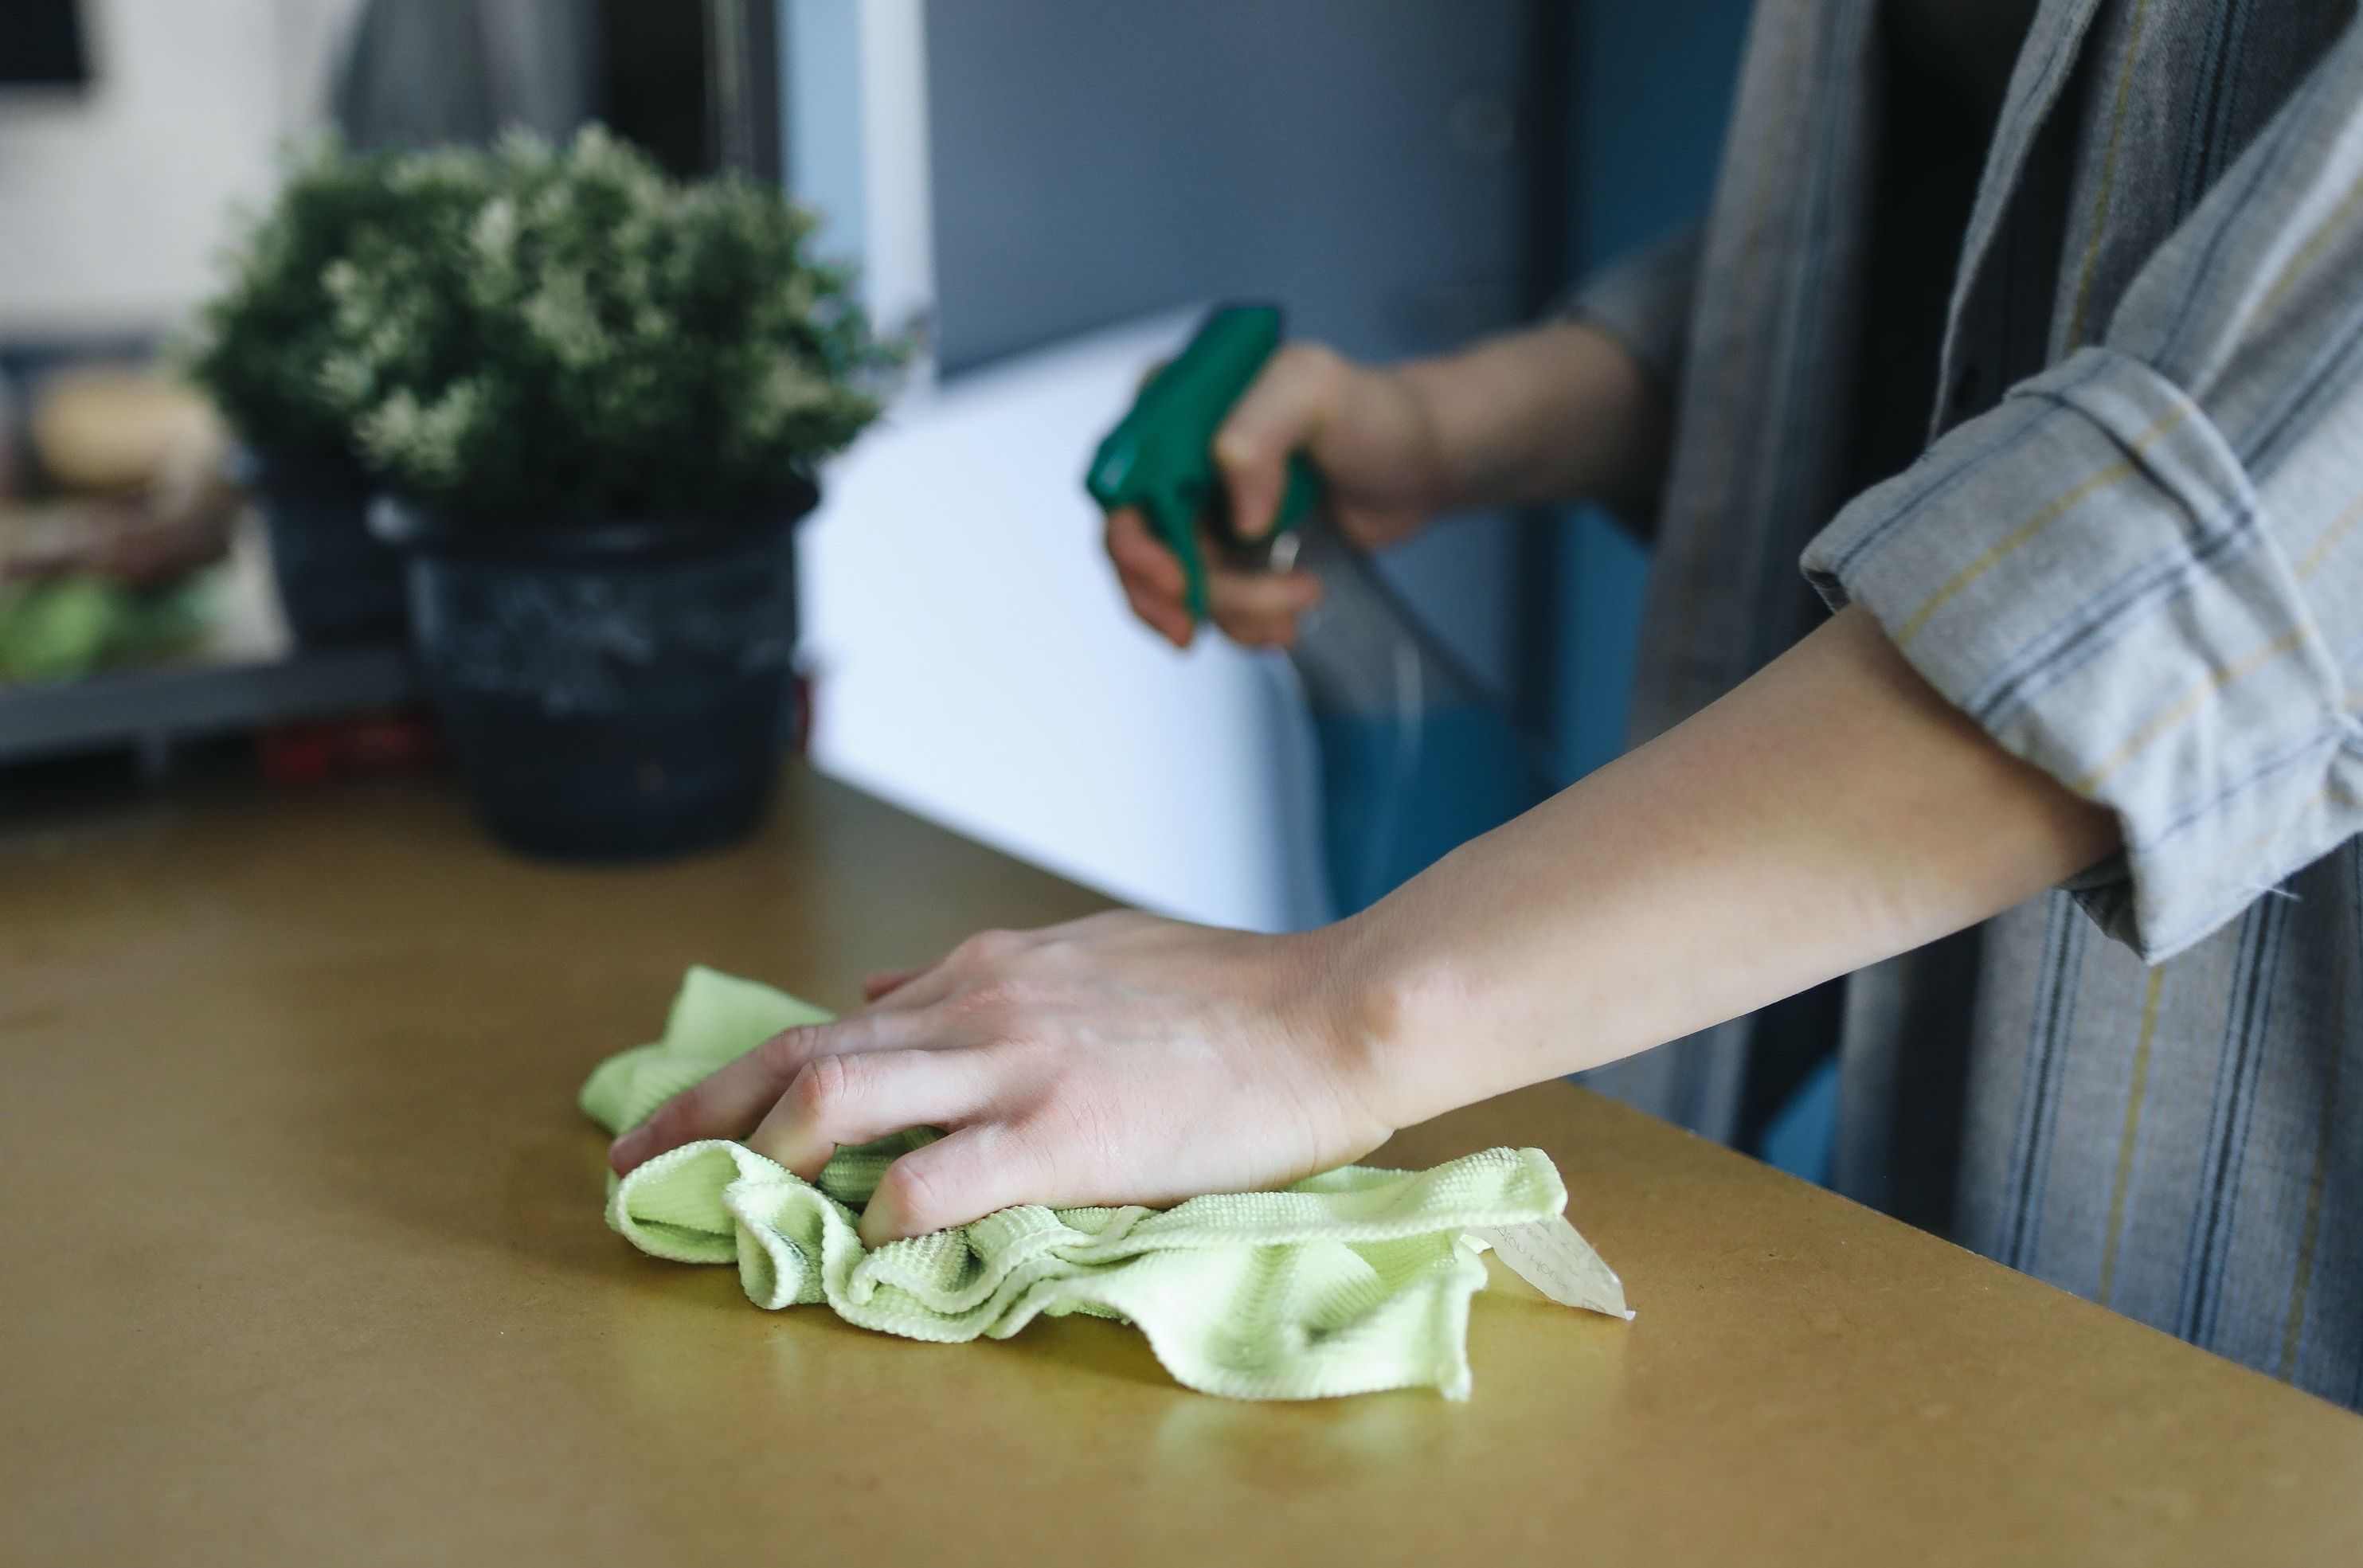 Cleaning Services Amsterdam - The Facts